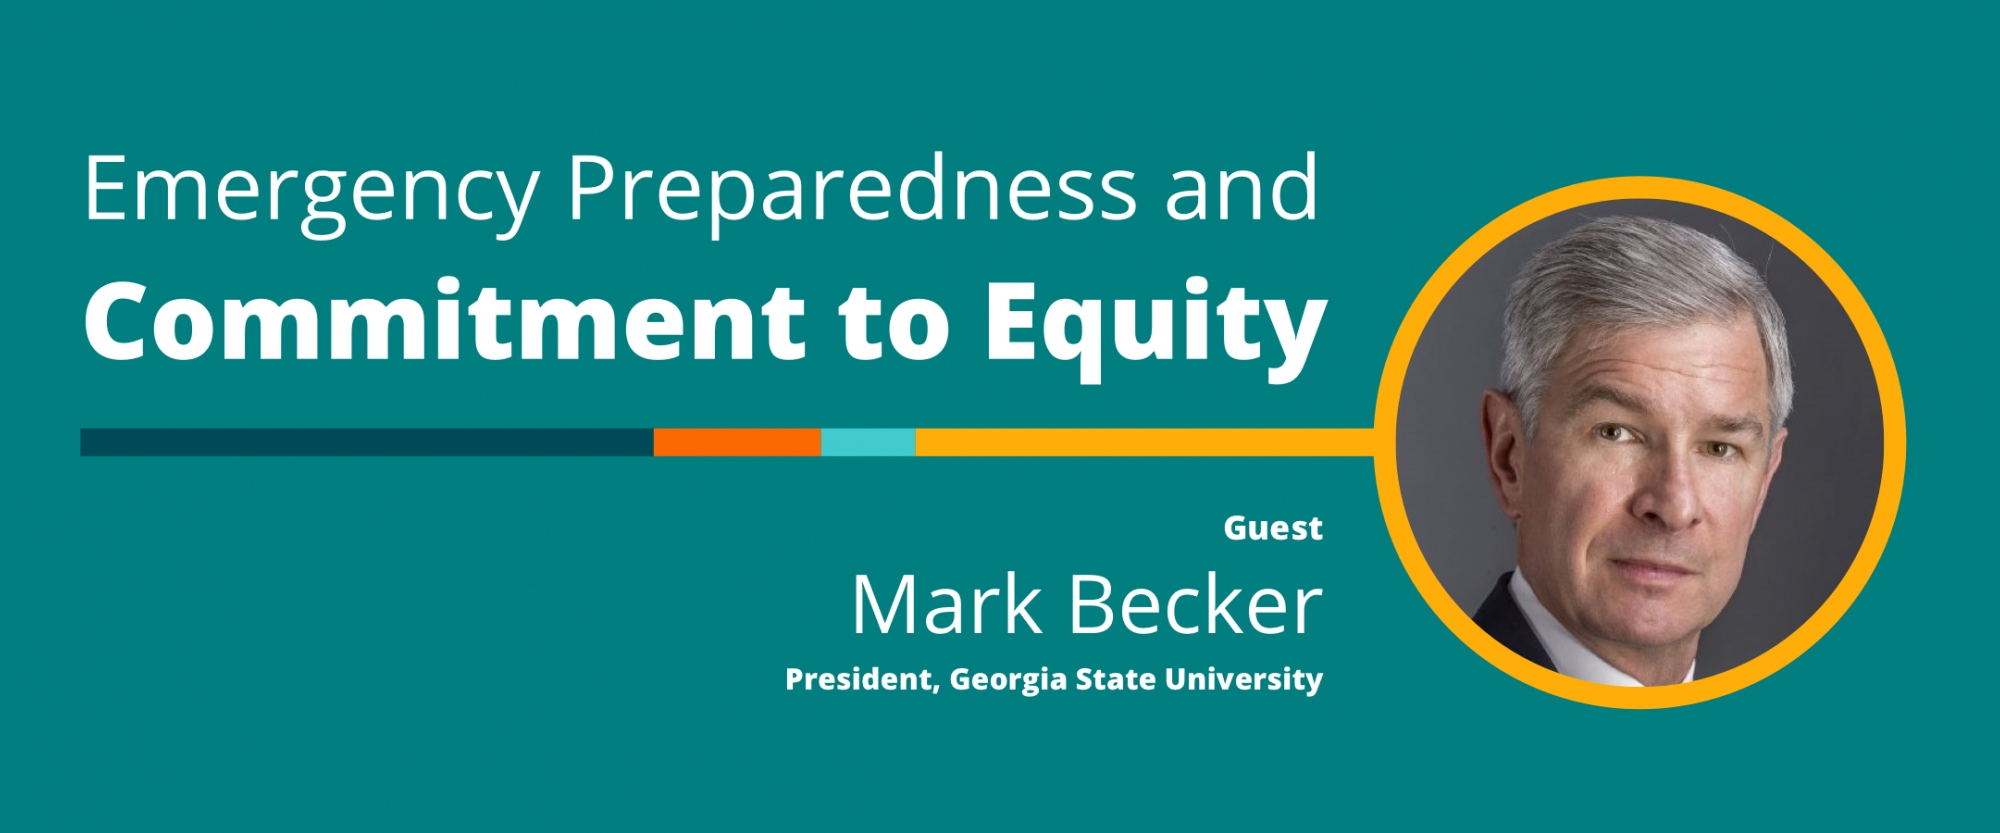 Emergency Preparedness and Commitment to Equity: A Conversation With Mark Becker, Georgia State University President